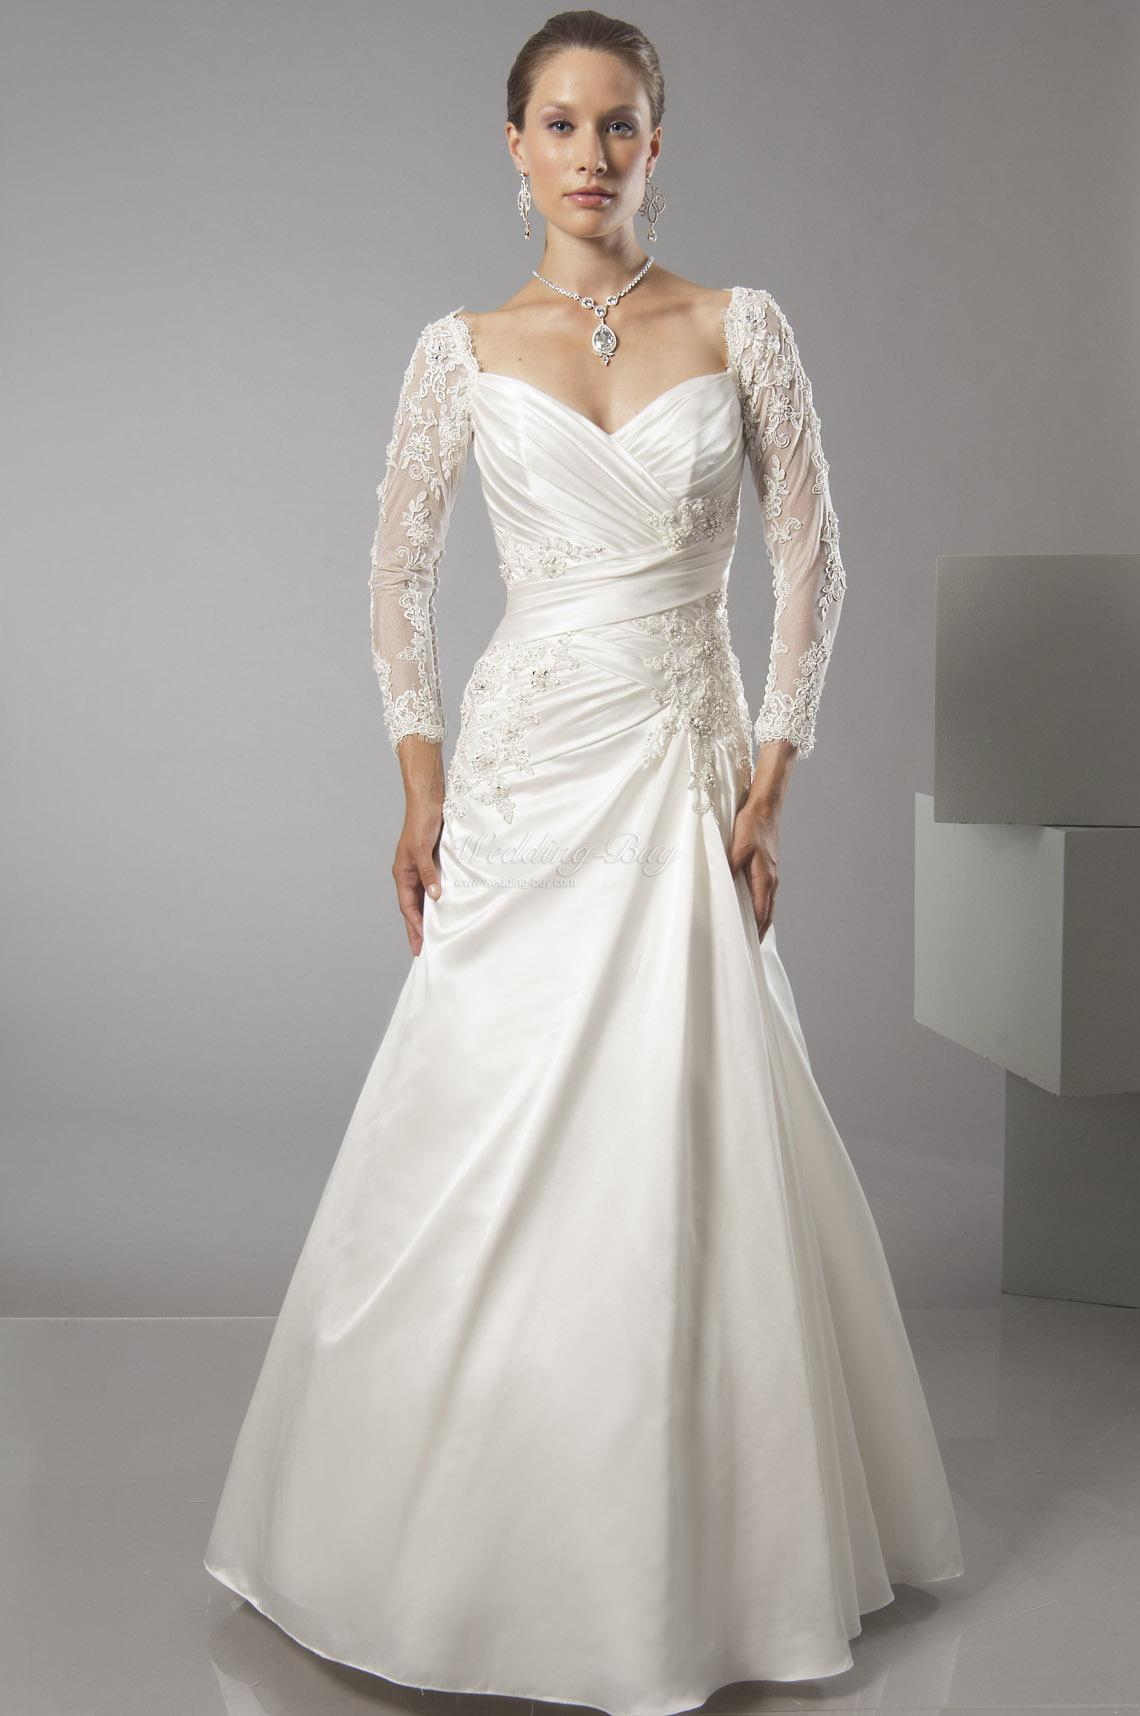 2014 2015 wedding dress trends lace sleeves dipped for Long sleeve dresses to wear to a wedding